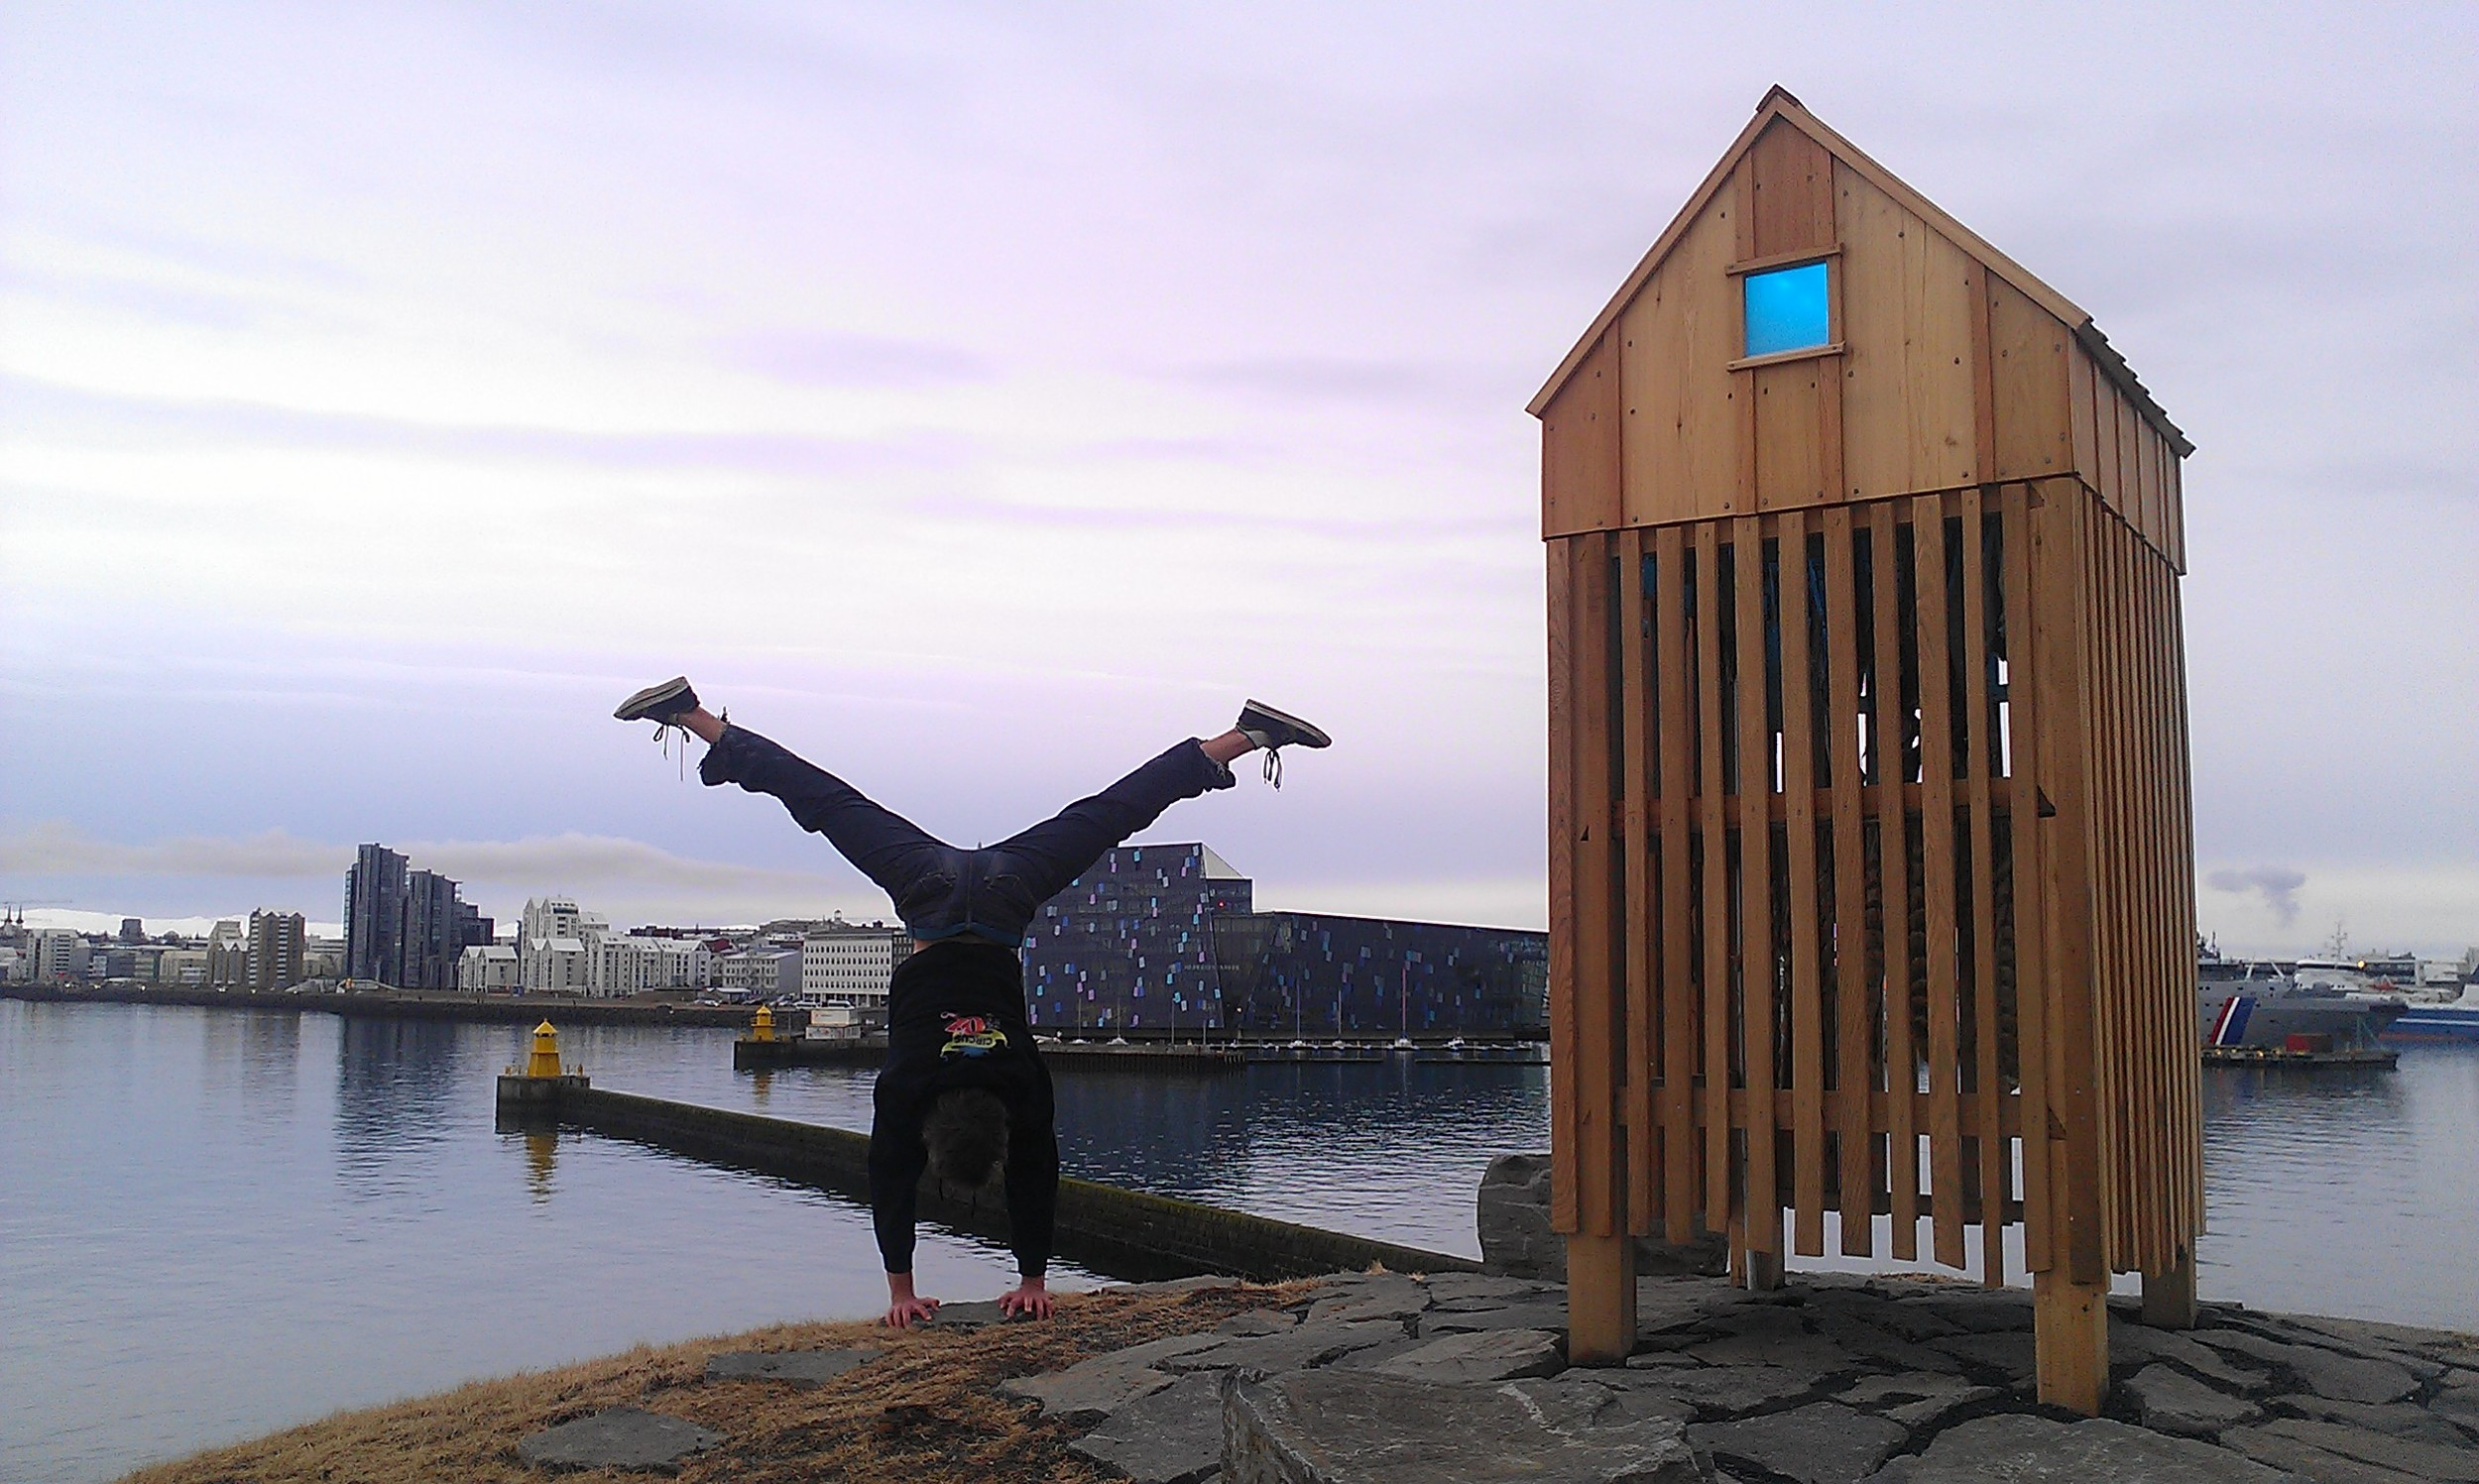 Admiring the public art in Reykjavic:  Þúfa by Ólöf Nordal, with the beautiful Harpa facade, designed by Olafur Eliasson in the background.